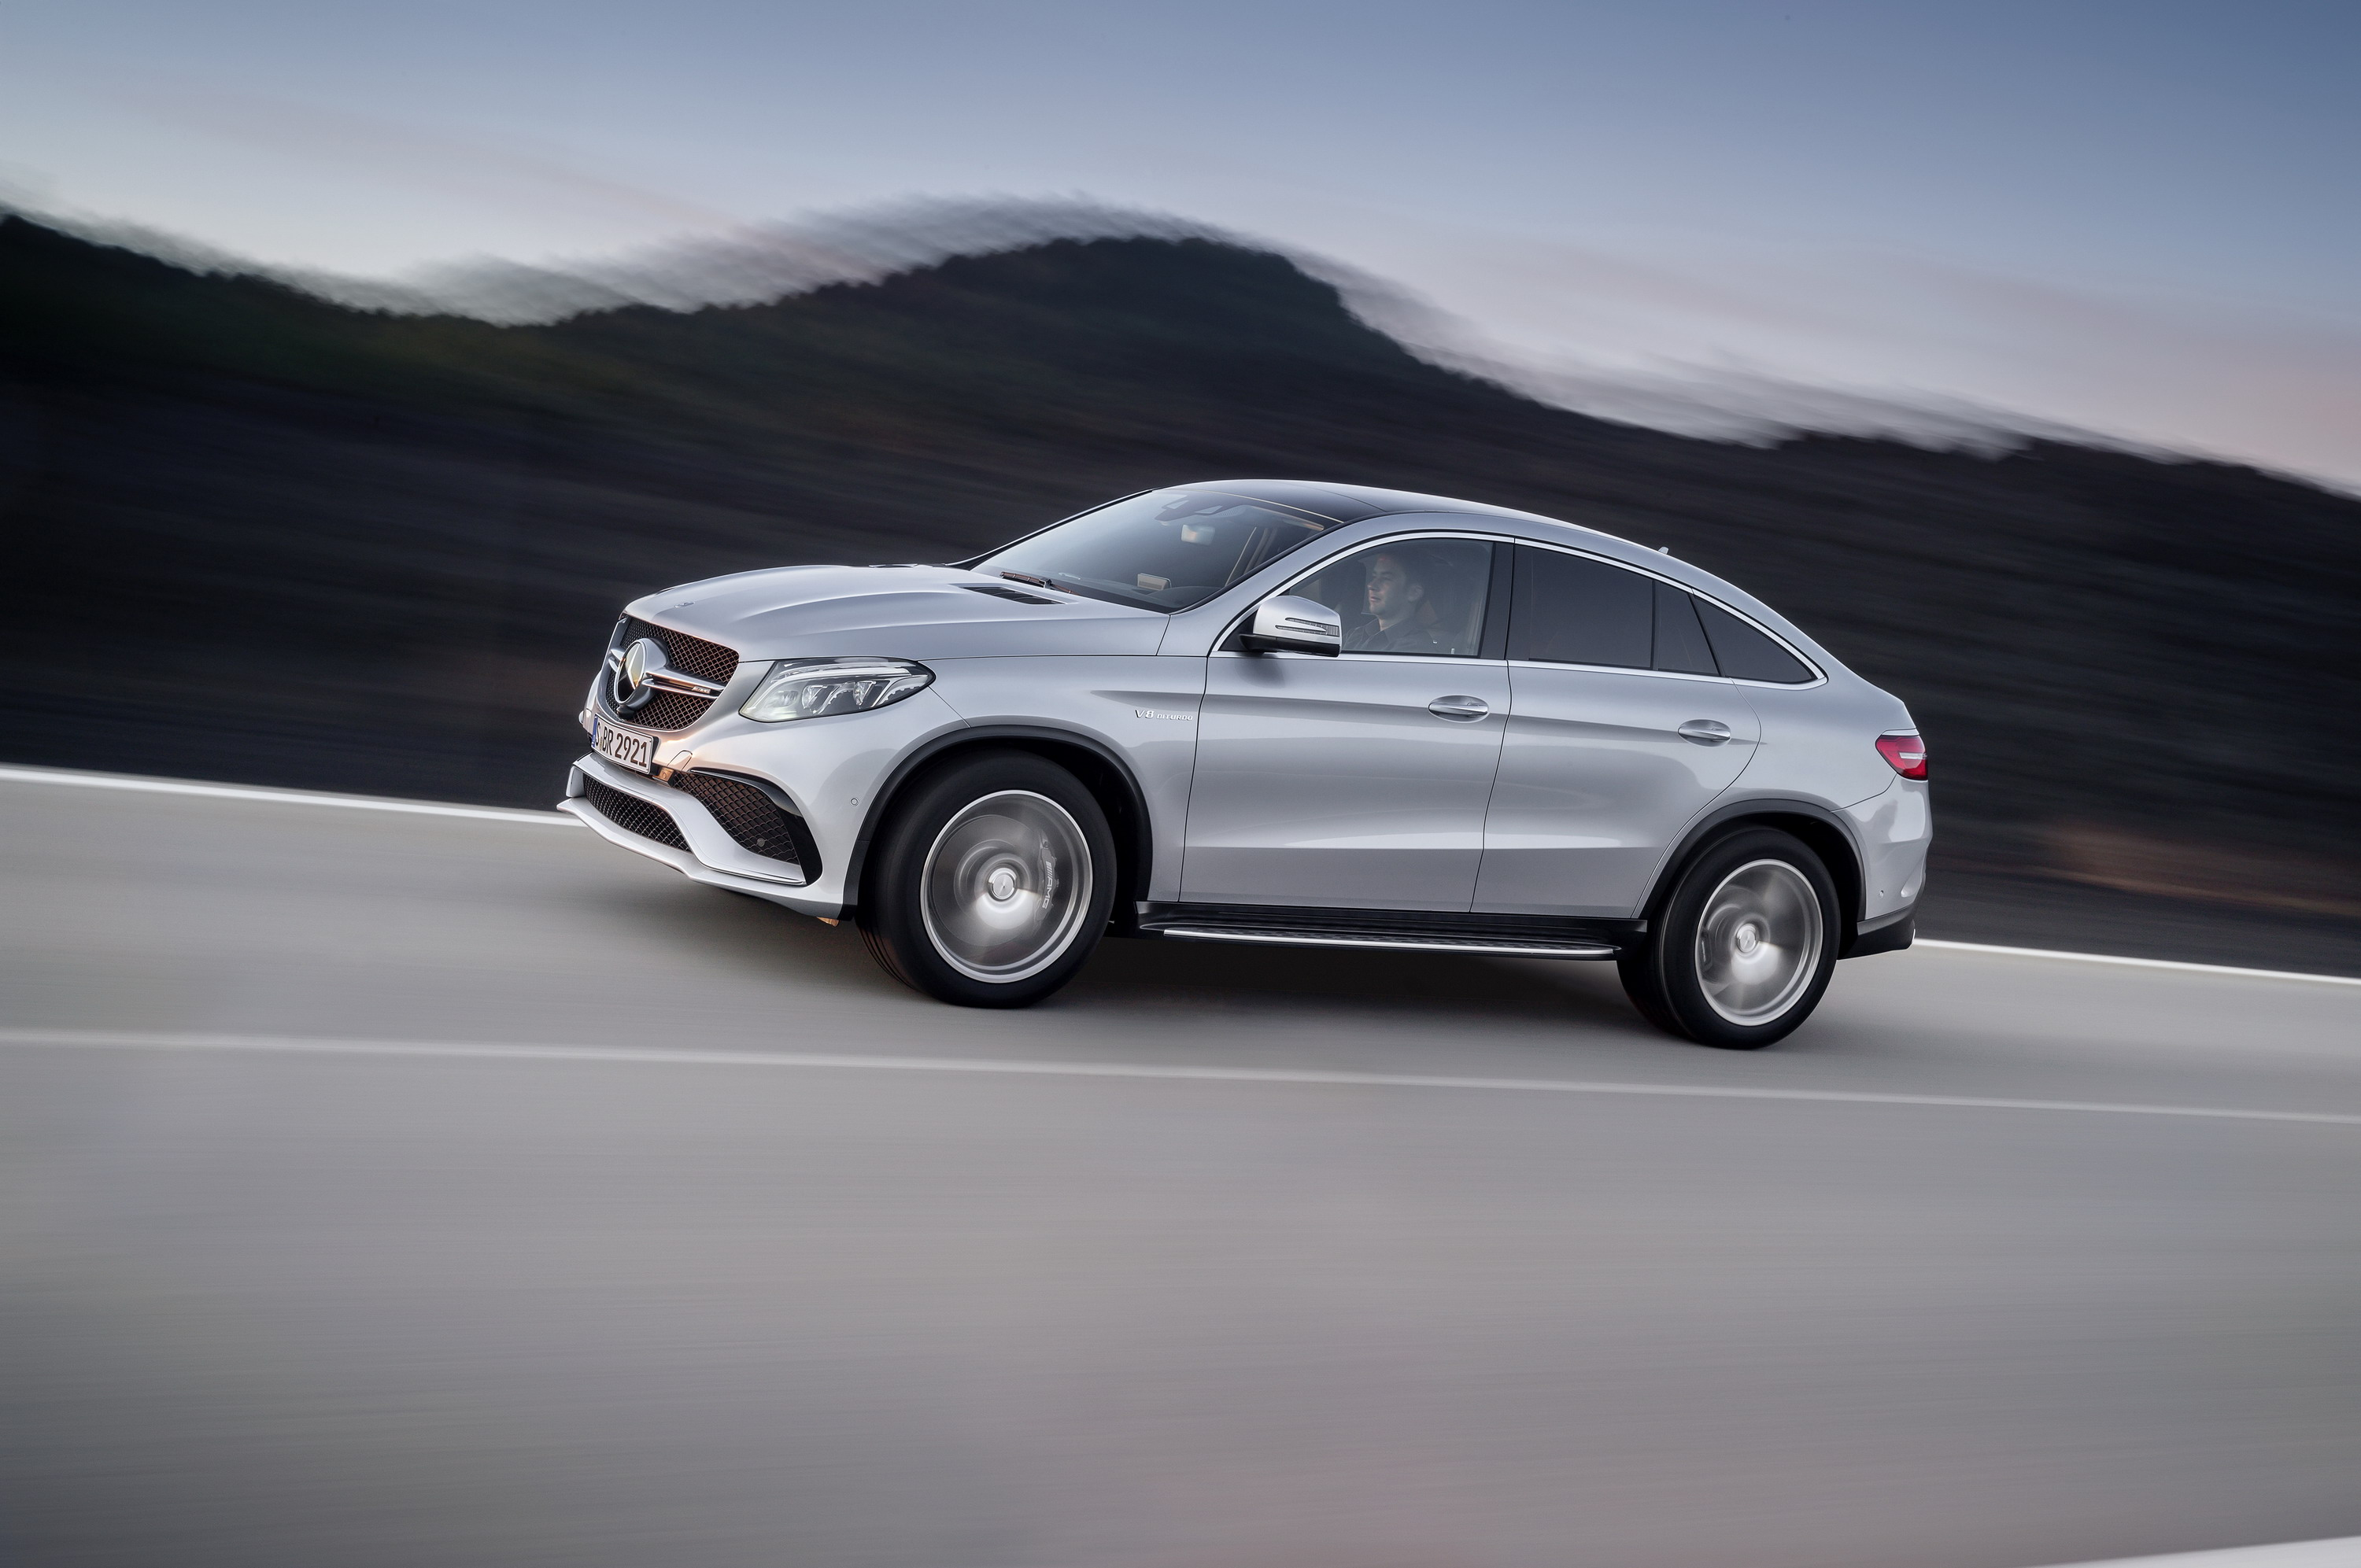 2016 mercedes benz gle63 amg coupe review top speed for Mercedes benz gle63